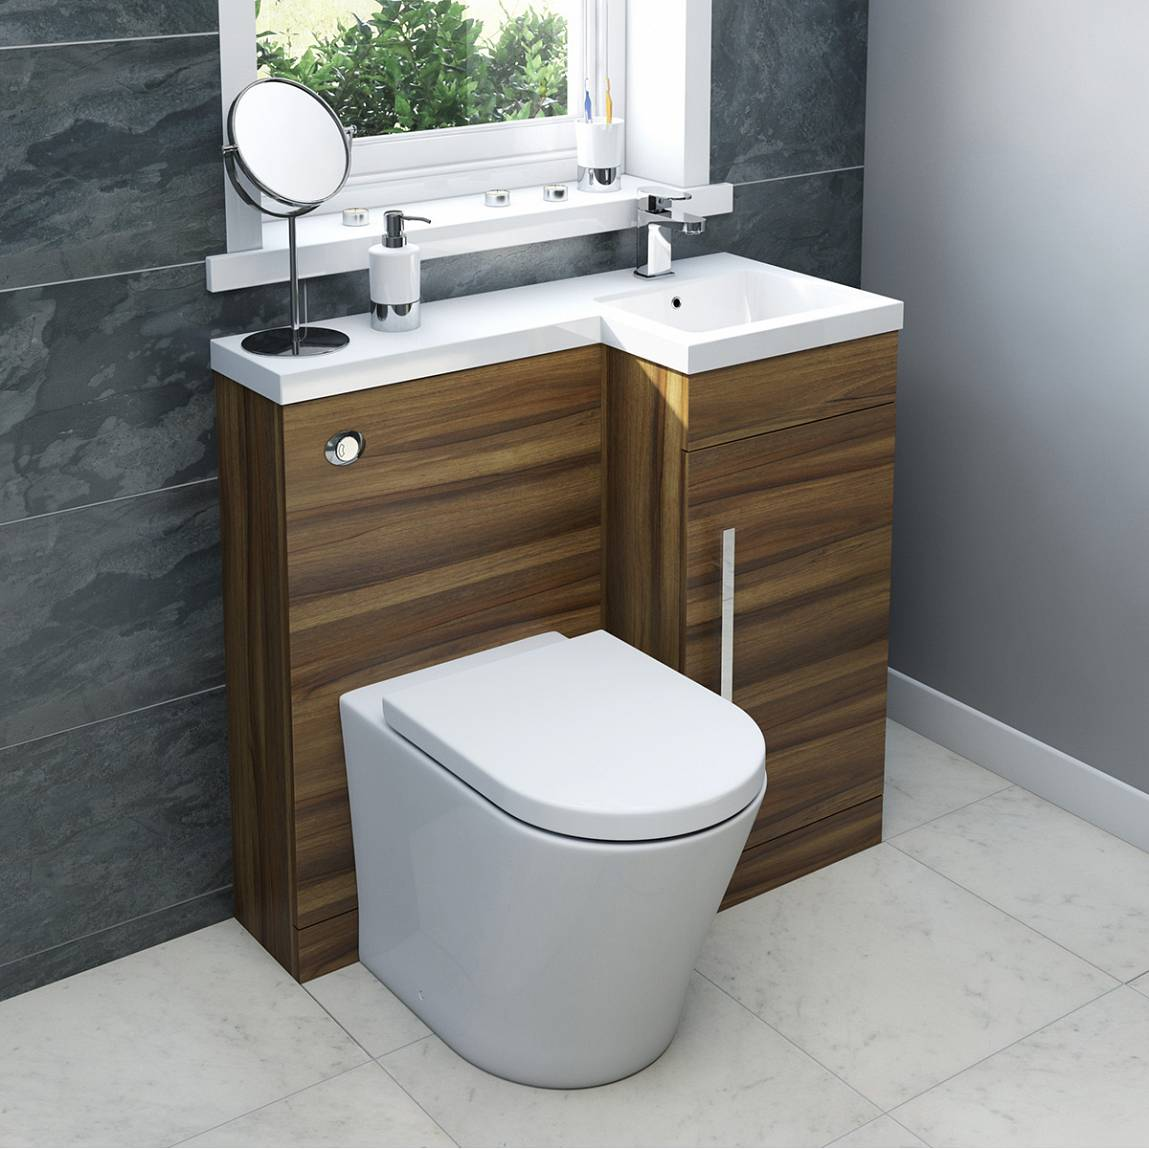 Small bathroom style it your way with myspace furniture - Combination bathroom vanity units ...